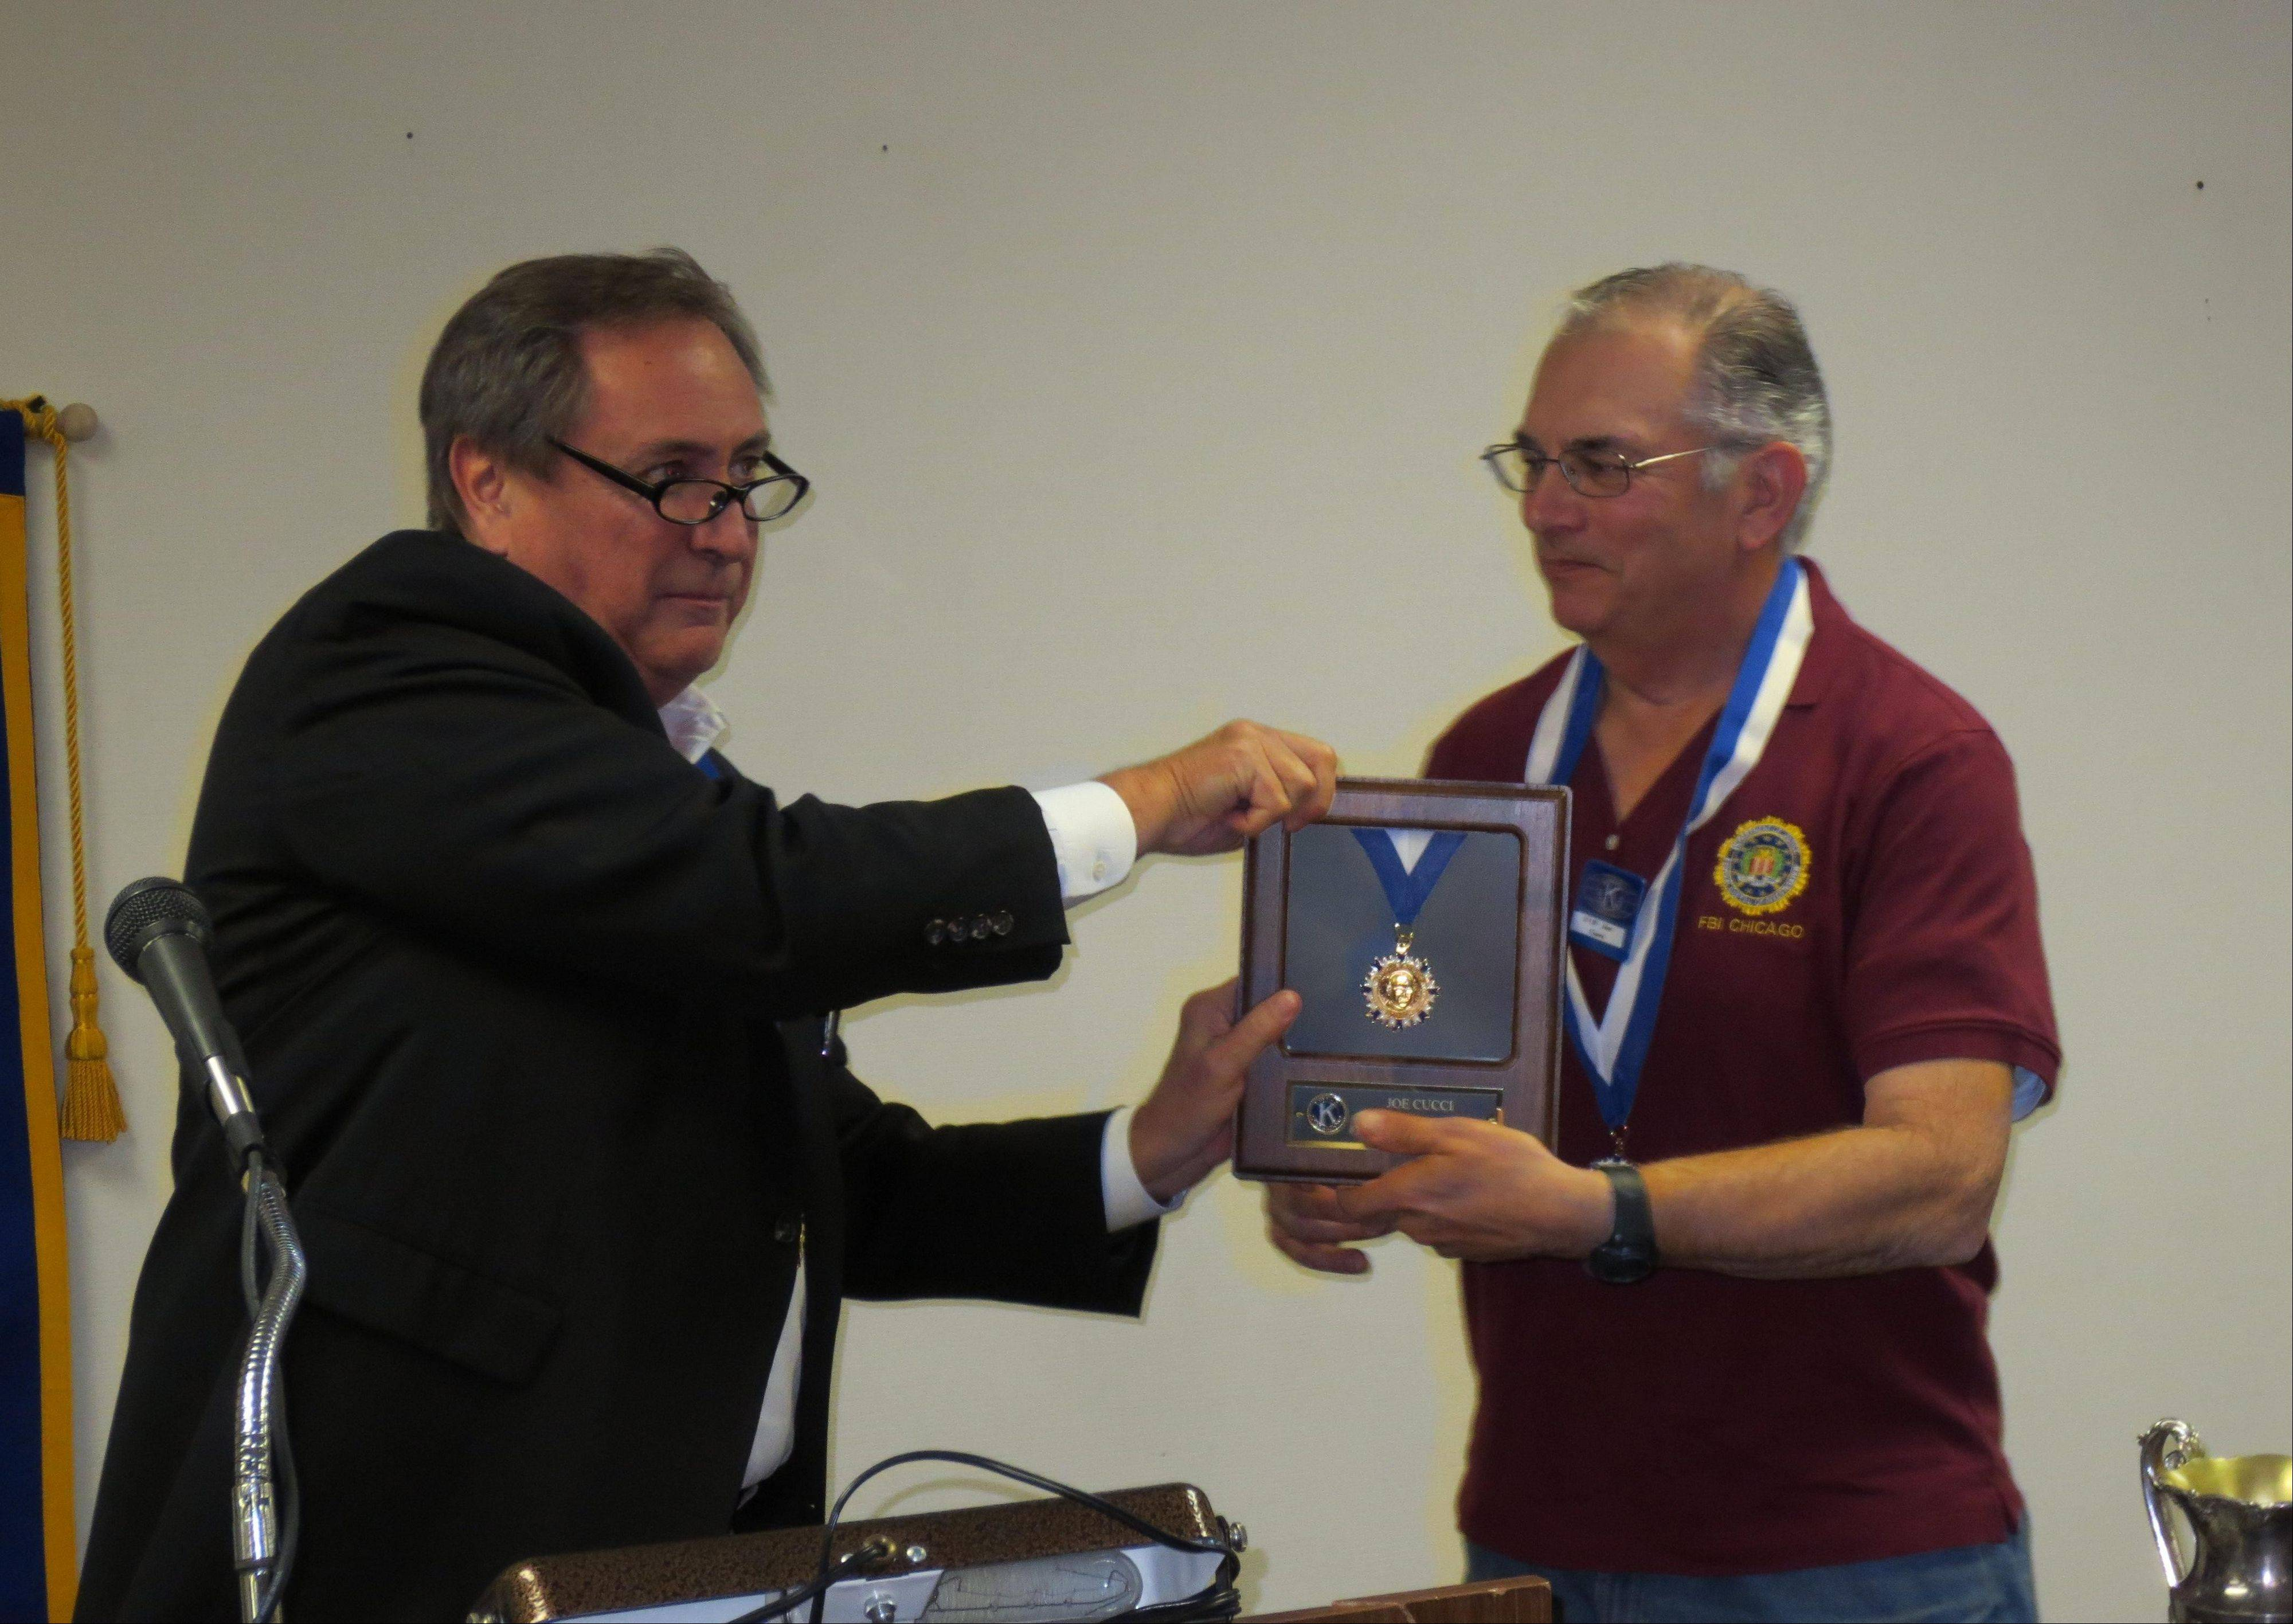 St. Charles Noon Kiwanis member Joe Boyd, left, gives past president Joe Cucci the Hixson Award, the highest Kiwanis award to an individual for 2012. Boyd, a past Hixson Award recipient, went through the lengthy list of contributions Cucci has made to the club and the community.